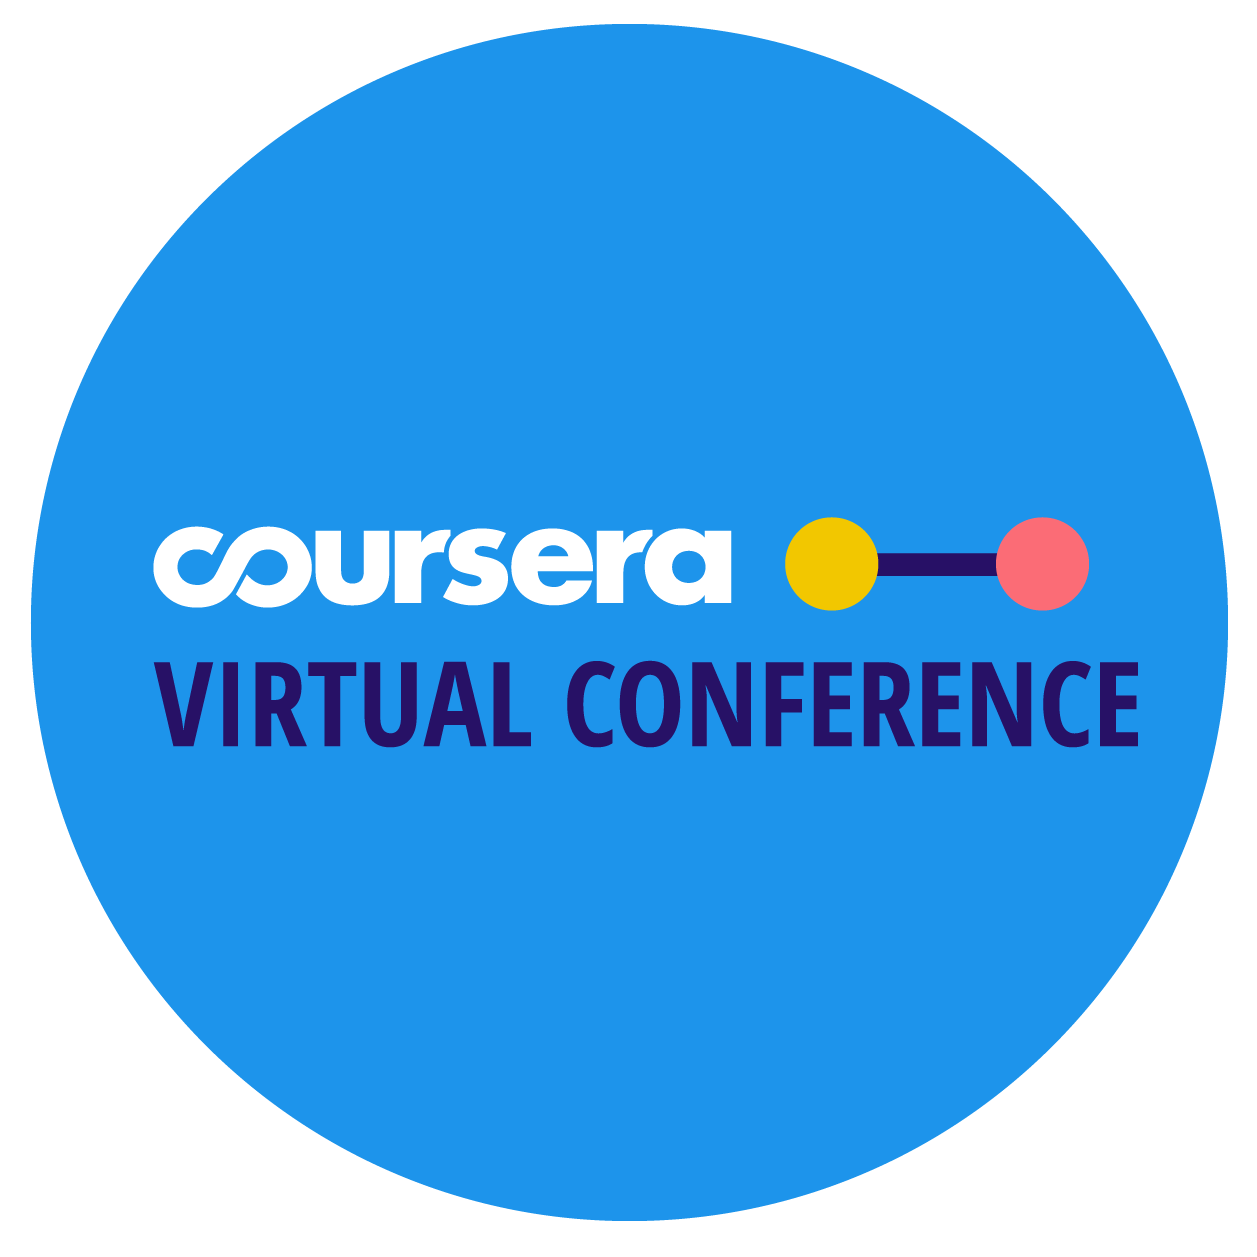 coursera conference